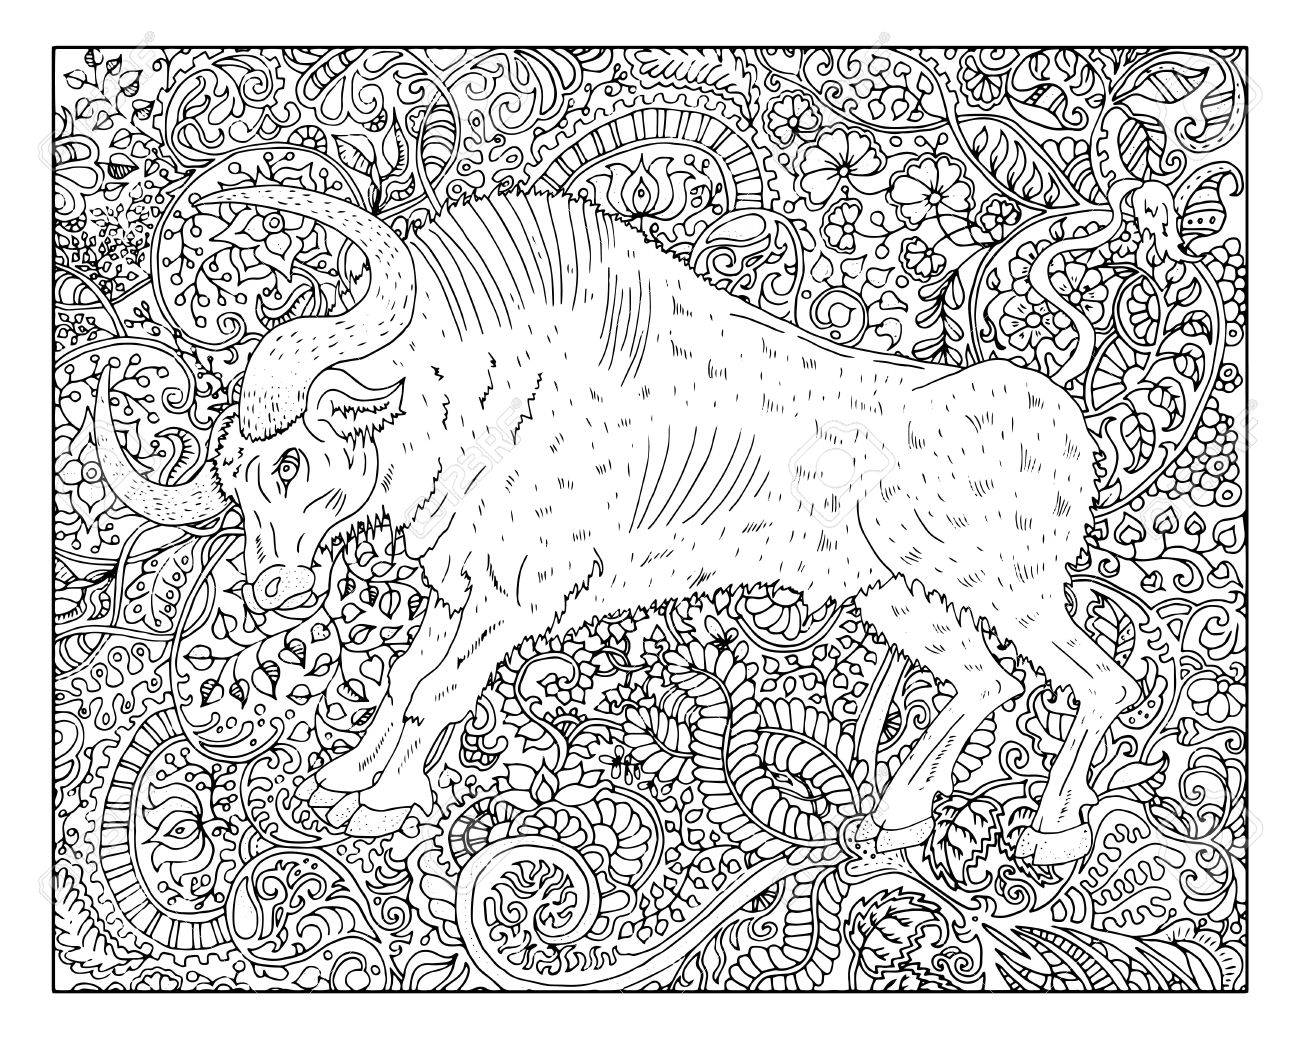 Hand drawn ox against zen floral pattern background for adult